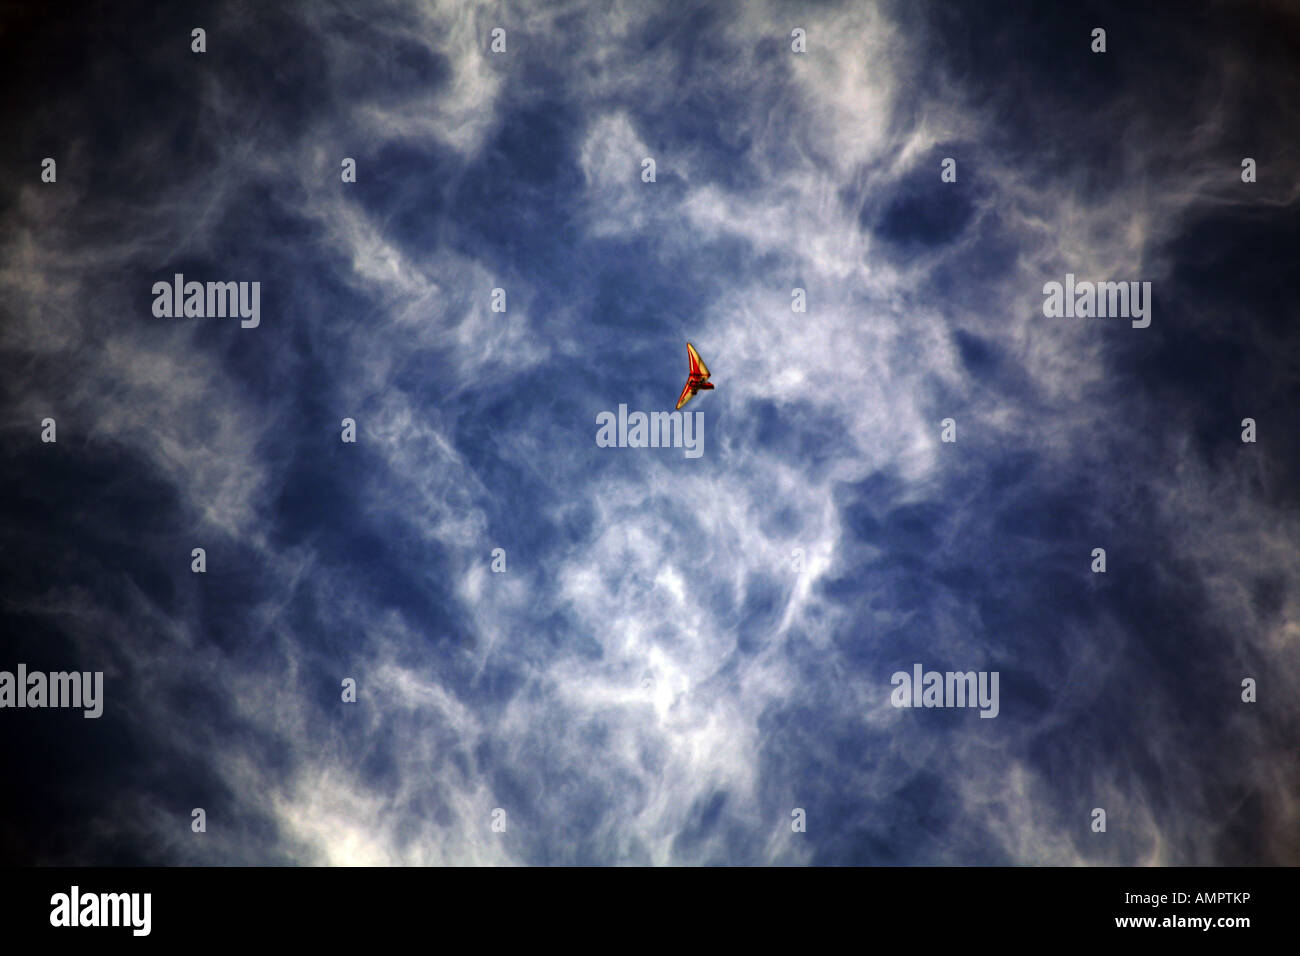 Clouds and hang glider UK - Stock Image